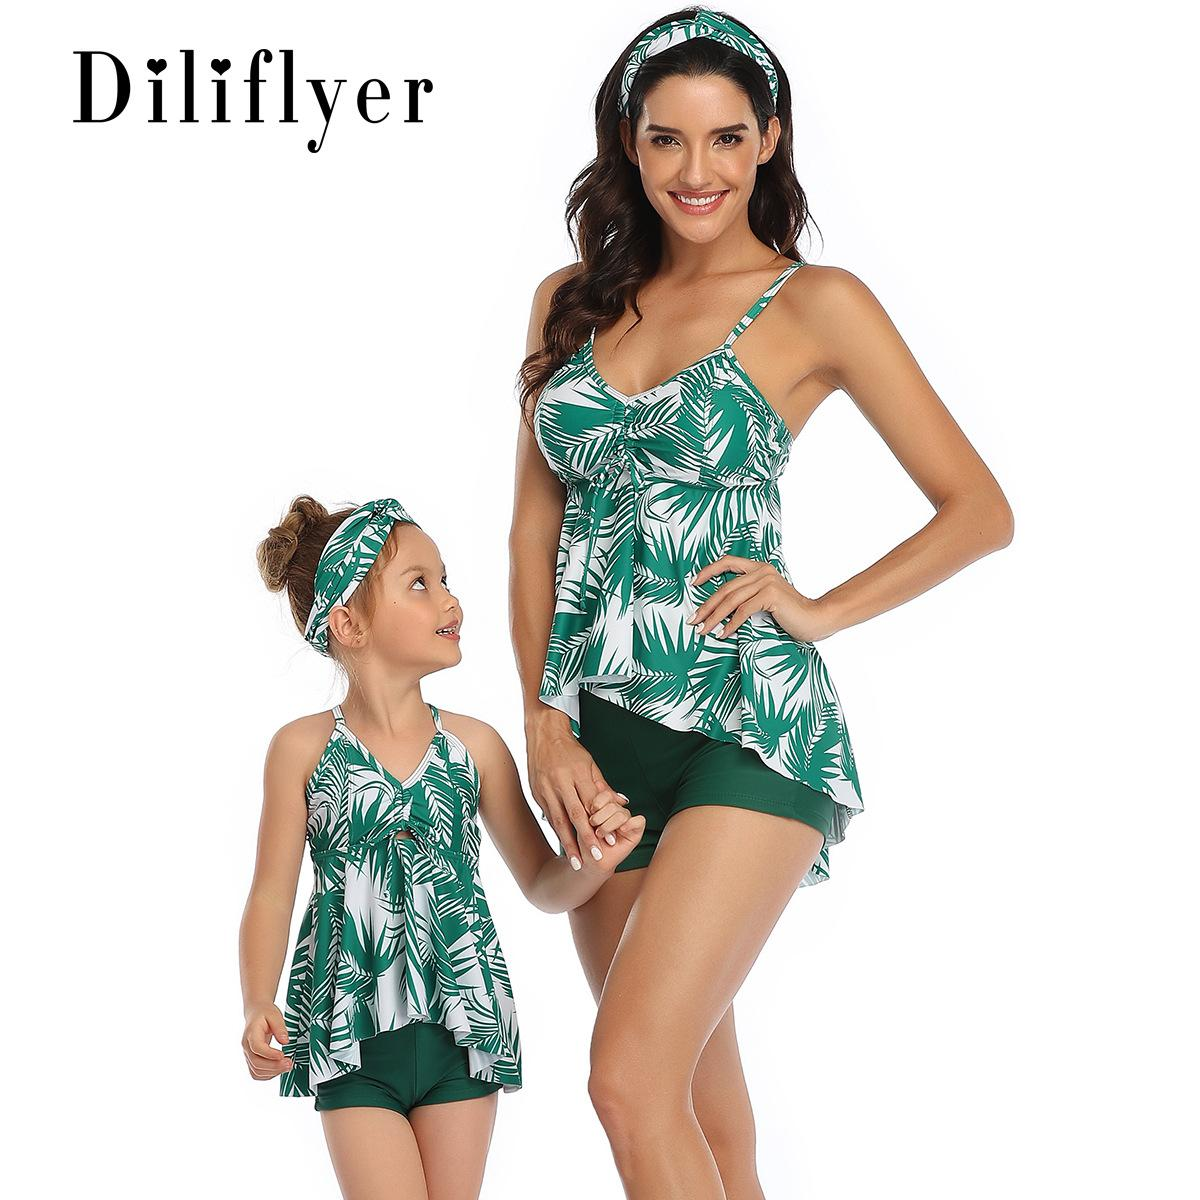 Hirigin famille Matching Maillots de bain 2020 New Mother And Pieces Me Summer tankini 2 Set maillot de bain Plage Natation Porter maillot de bain